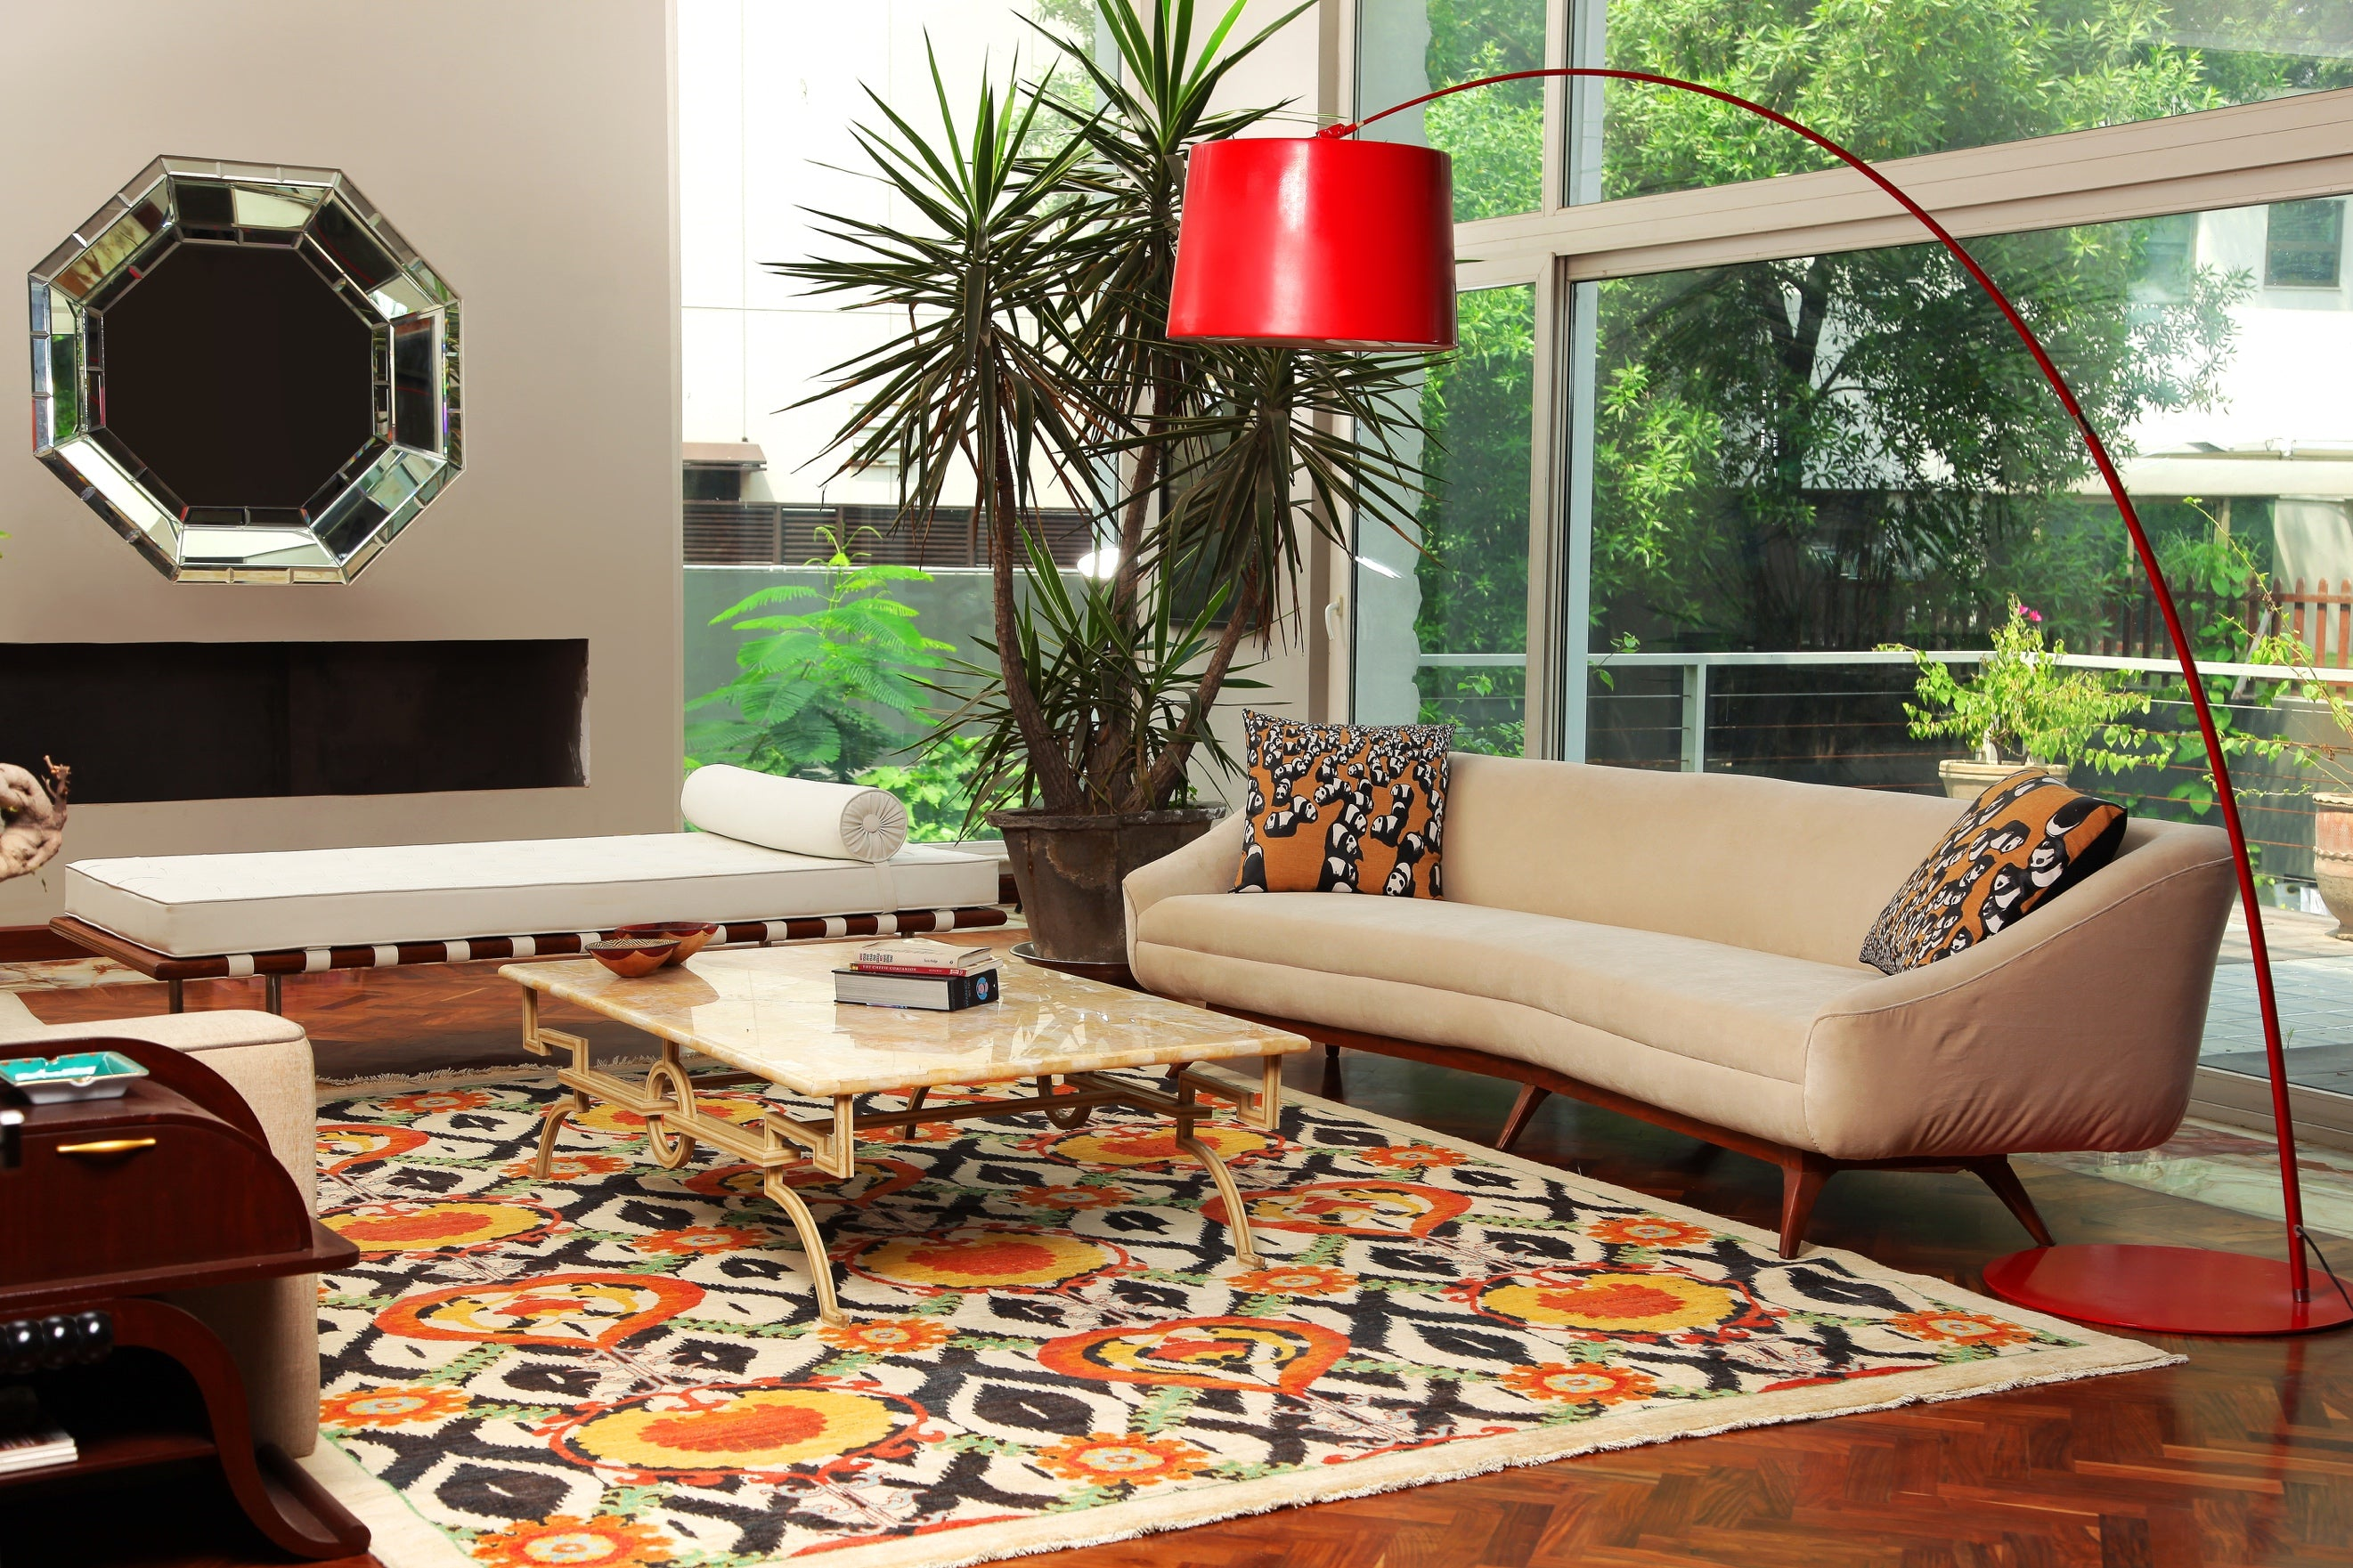 Patterned rugs are an amazing way to give any room a bold new look.